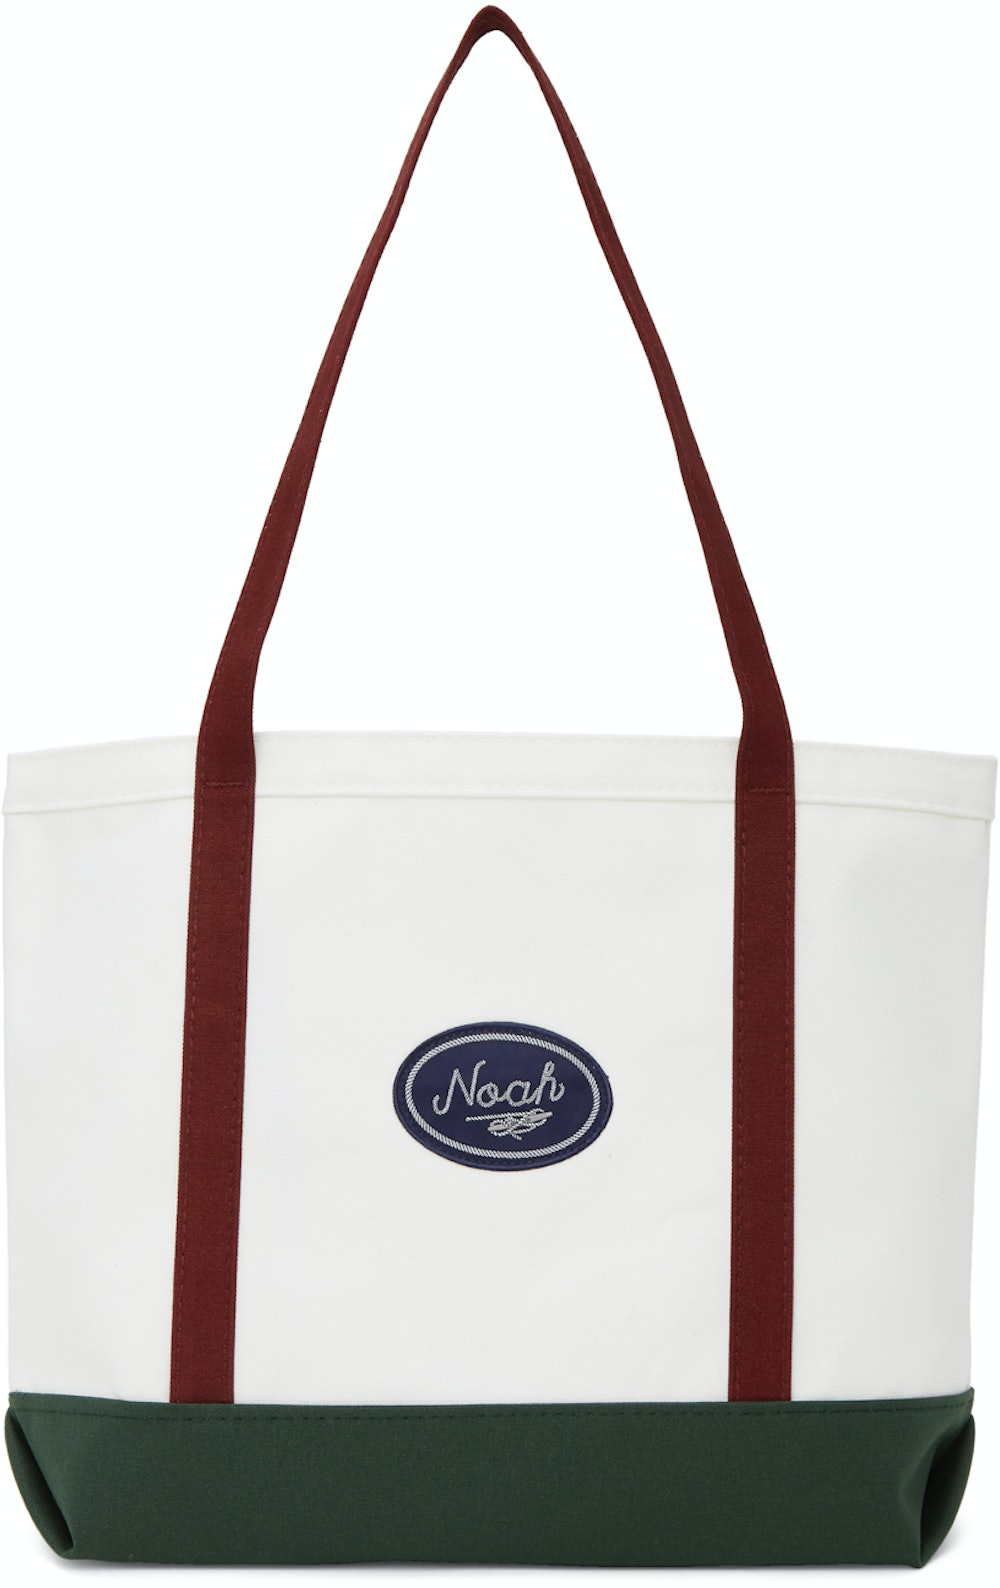 White Colorblocked Tote